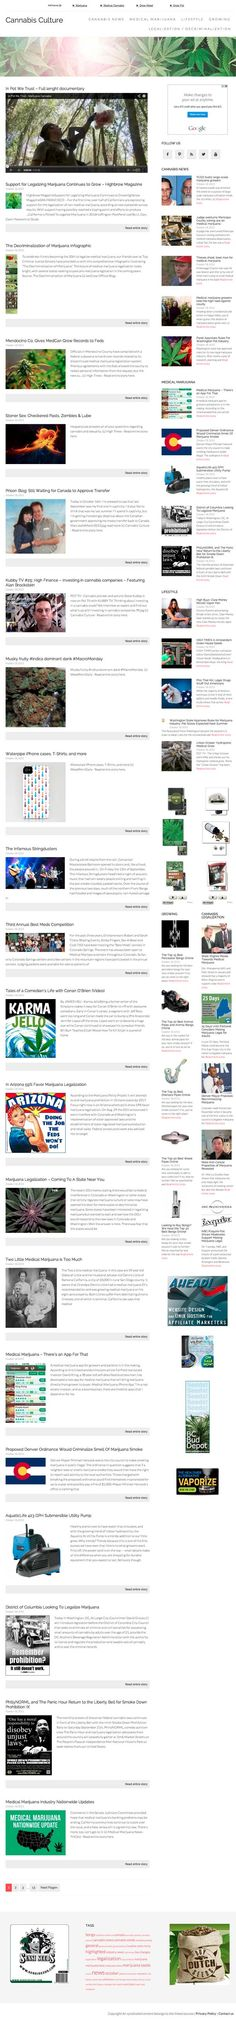 Cannabis and medical marijuana news and insights!  Fully automated site about hot cannabis topics such as medical marijuana, cannabis growing and legalization/decriminalization. Also marijuana news in general and popular 'cannabis culture'. All these five sub topics are so hot that you won't find problems finding very high paying CPA vendors (seeds, equipment,vaporizers etc.) but even with CPC ads only Google is paying up to 30 dollars per click for cannabis related keywords!